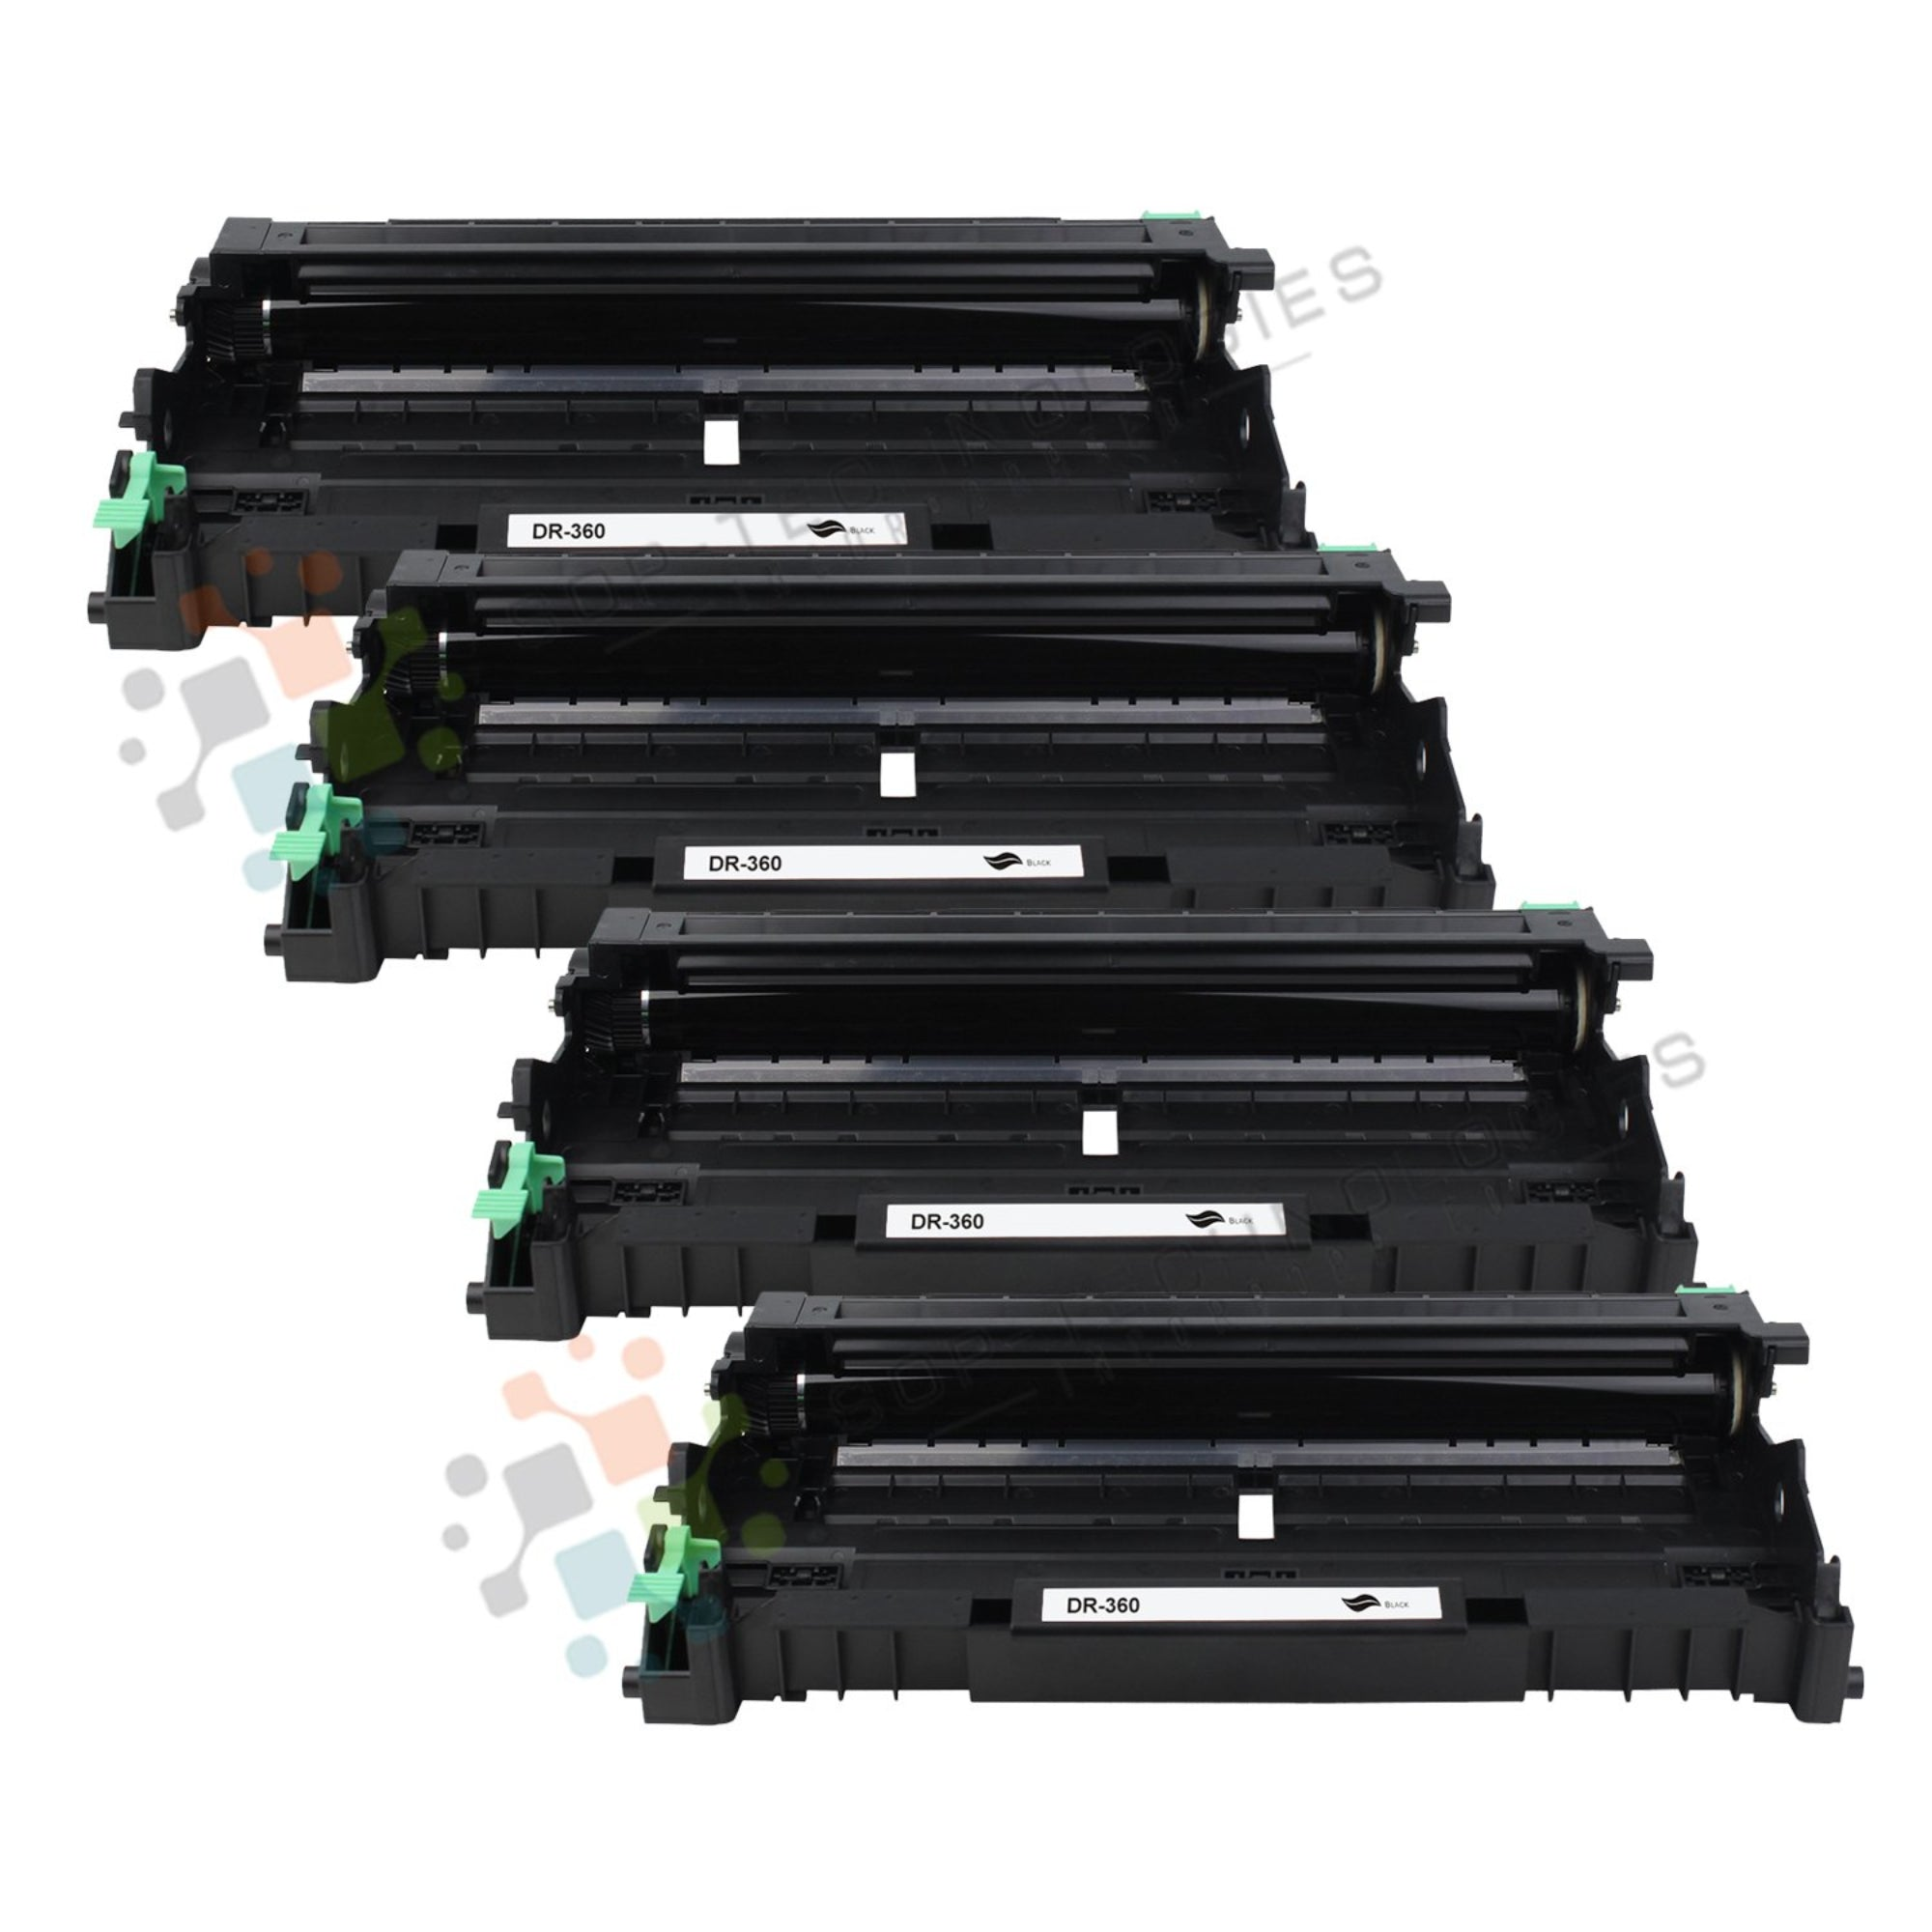 4 Pack DR-360 Replacement Drum Unit for Brother (Black Only) - SOP-TECHNOLOGIES, INC.